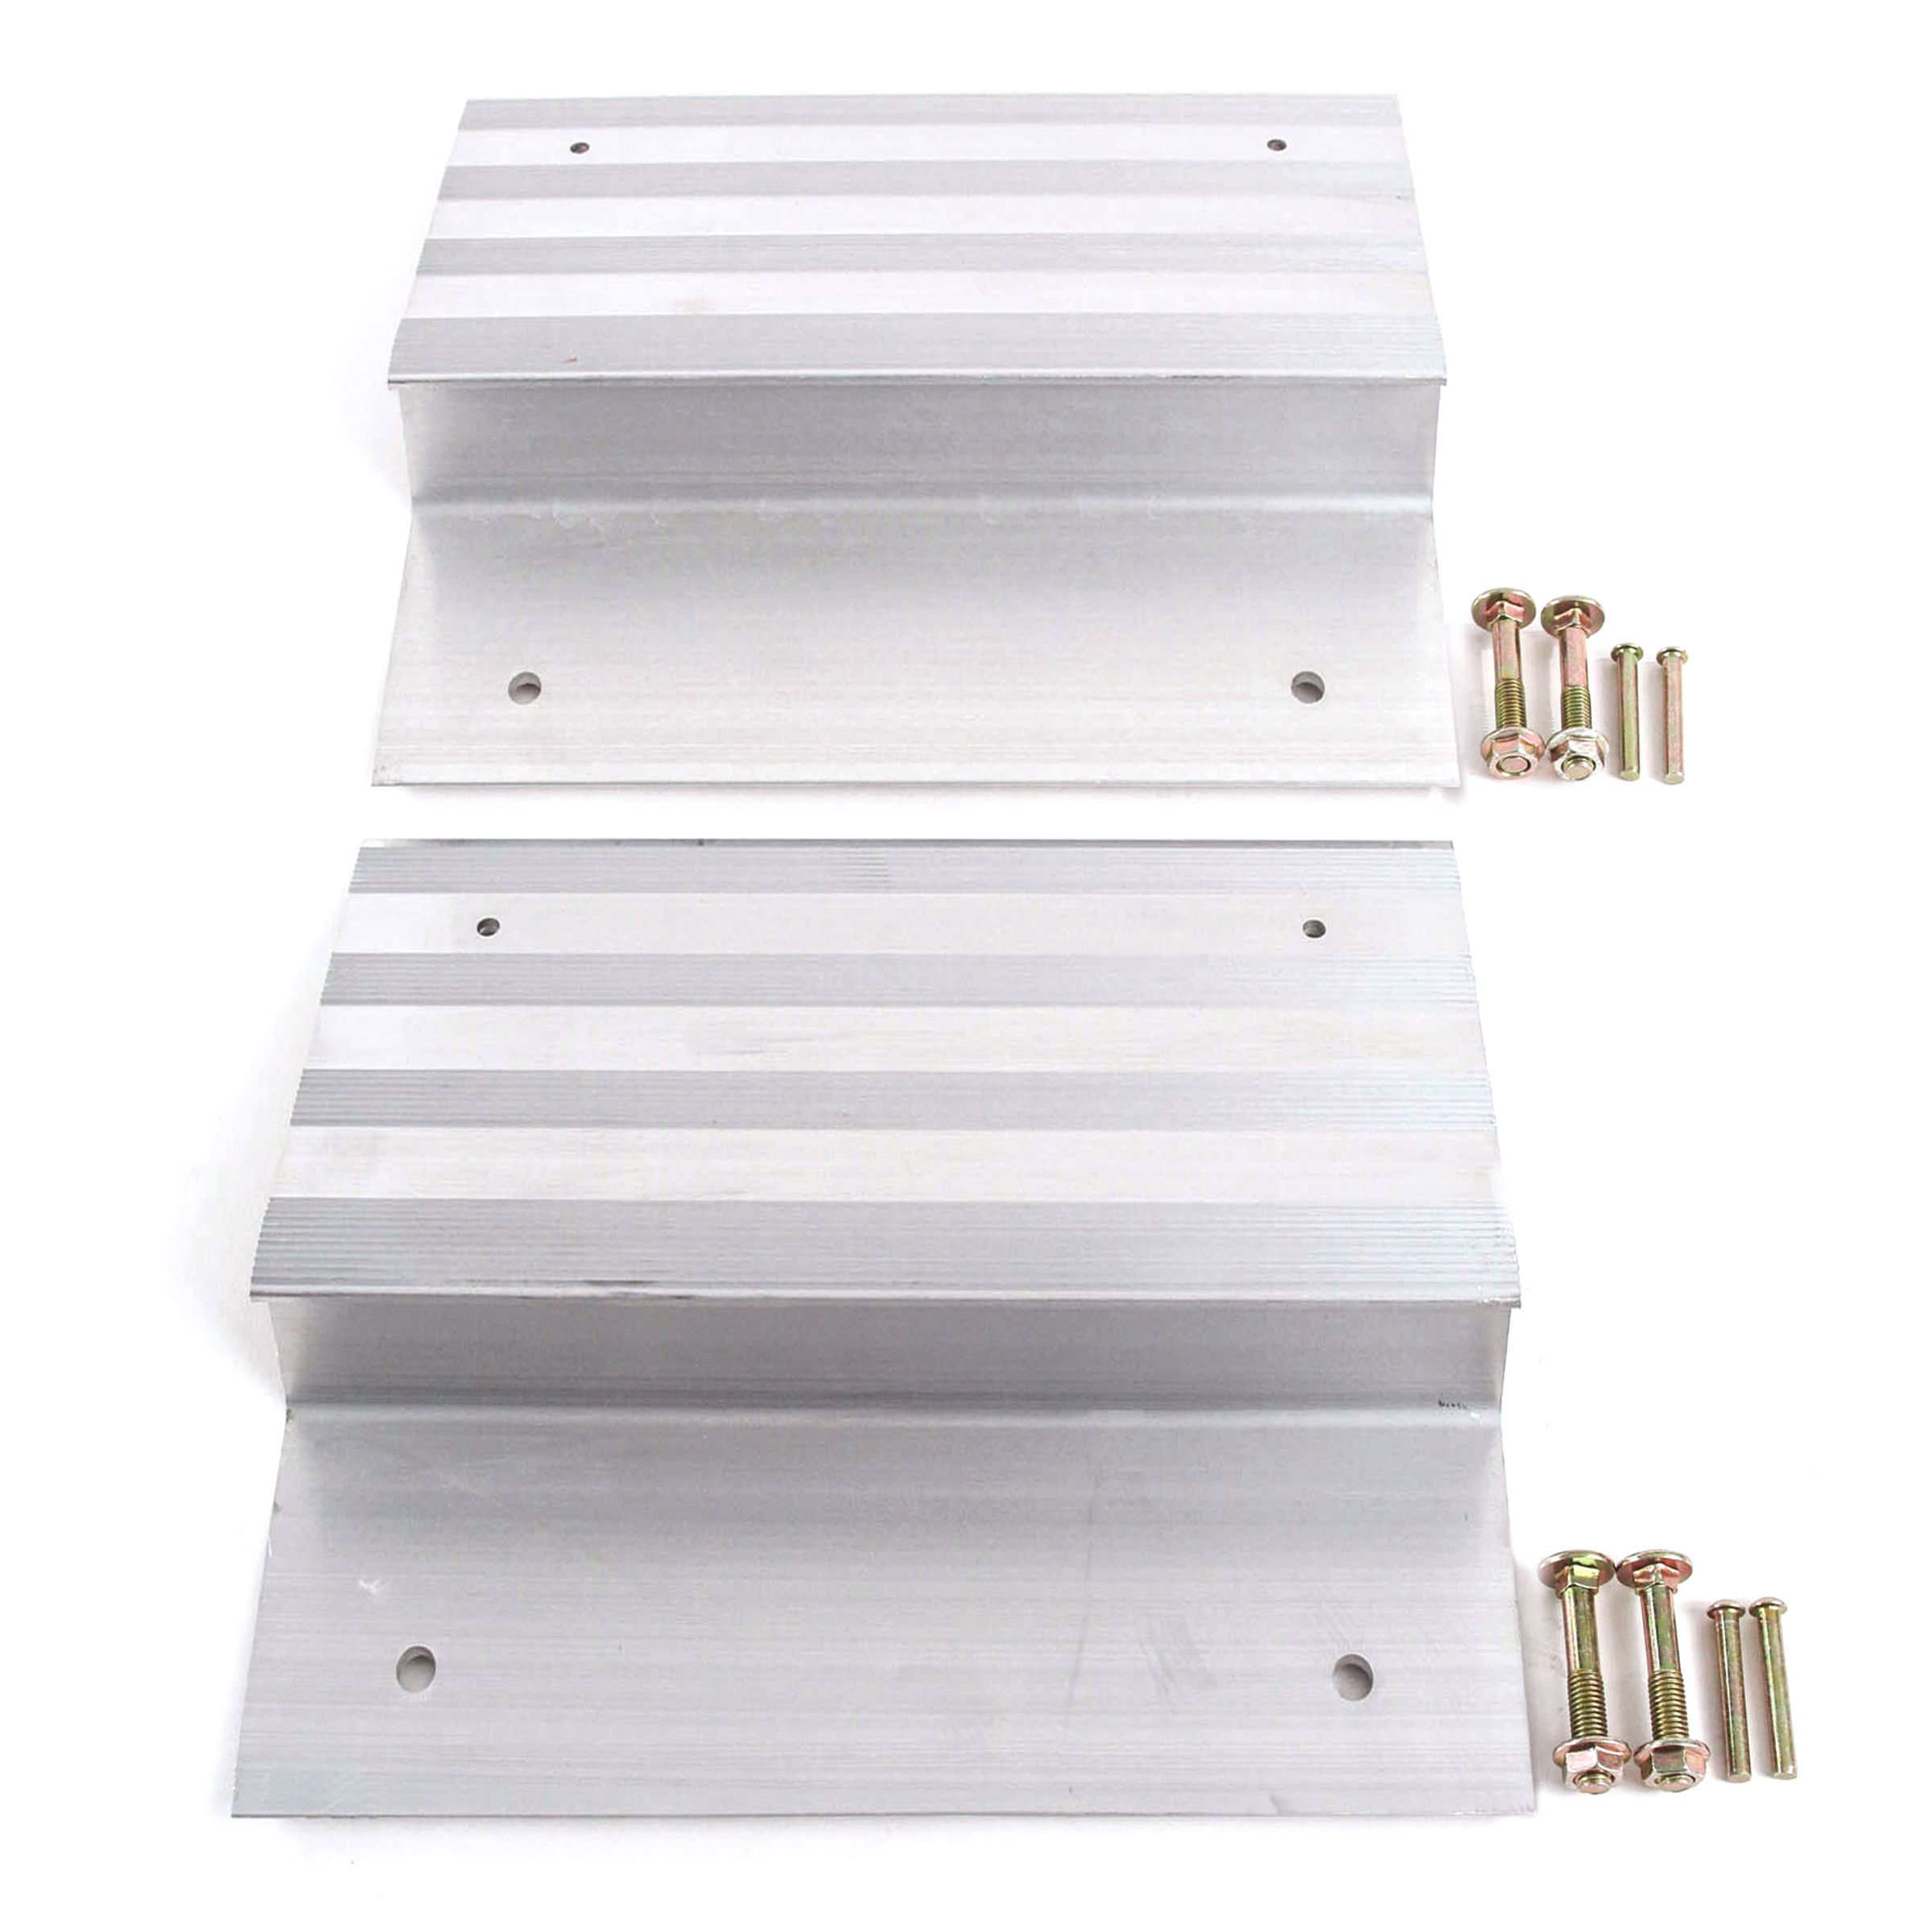 Ramp Aluminum Truck Top End Kit With Hardware Heavy Duty